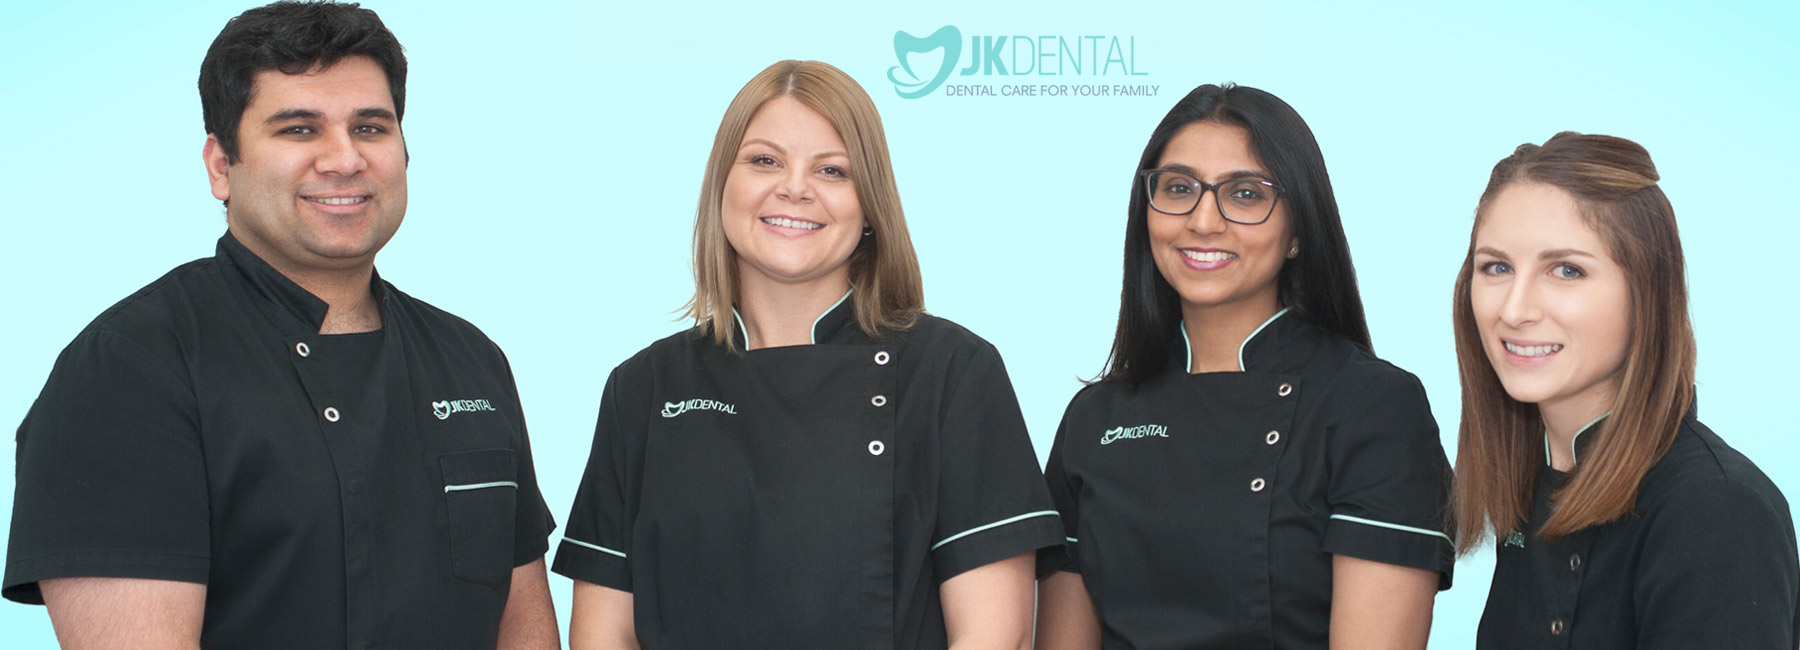 Jk-Dental-Team